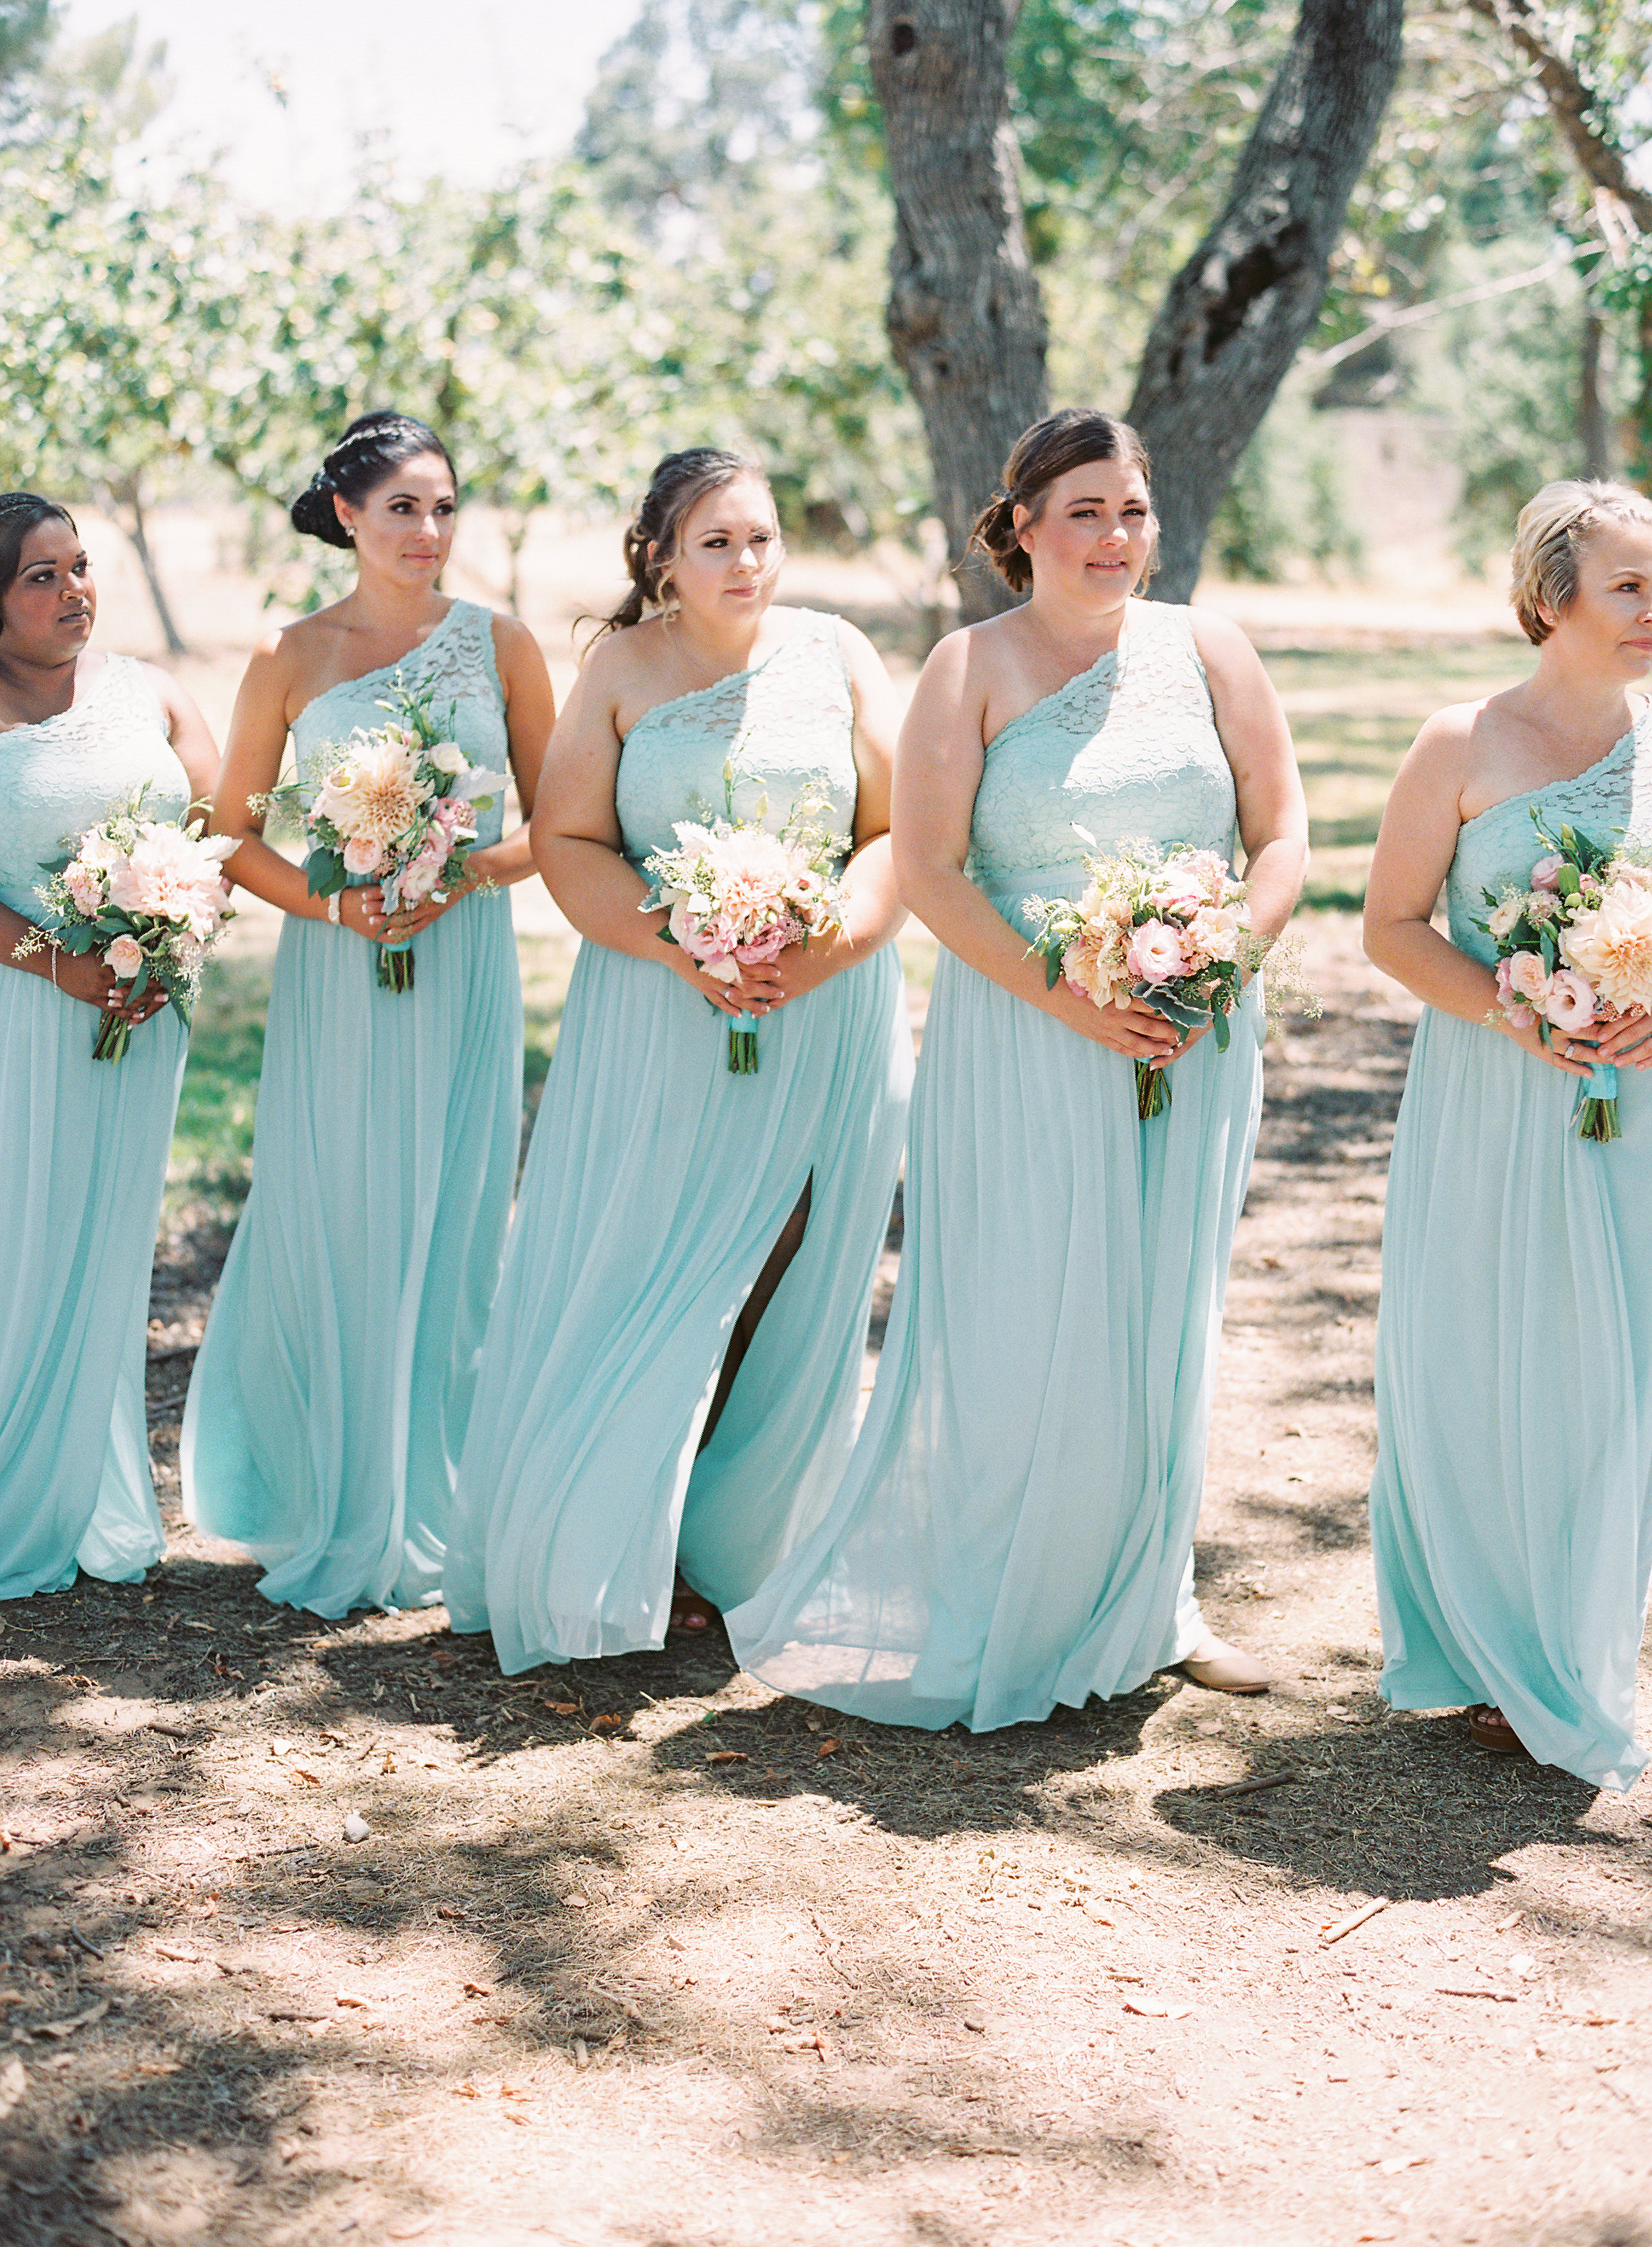 southern-inspired-wedding-at-ravenswood-historic-site-007-6.jpg